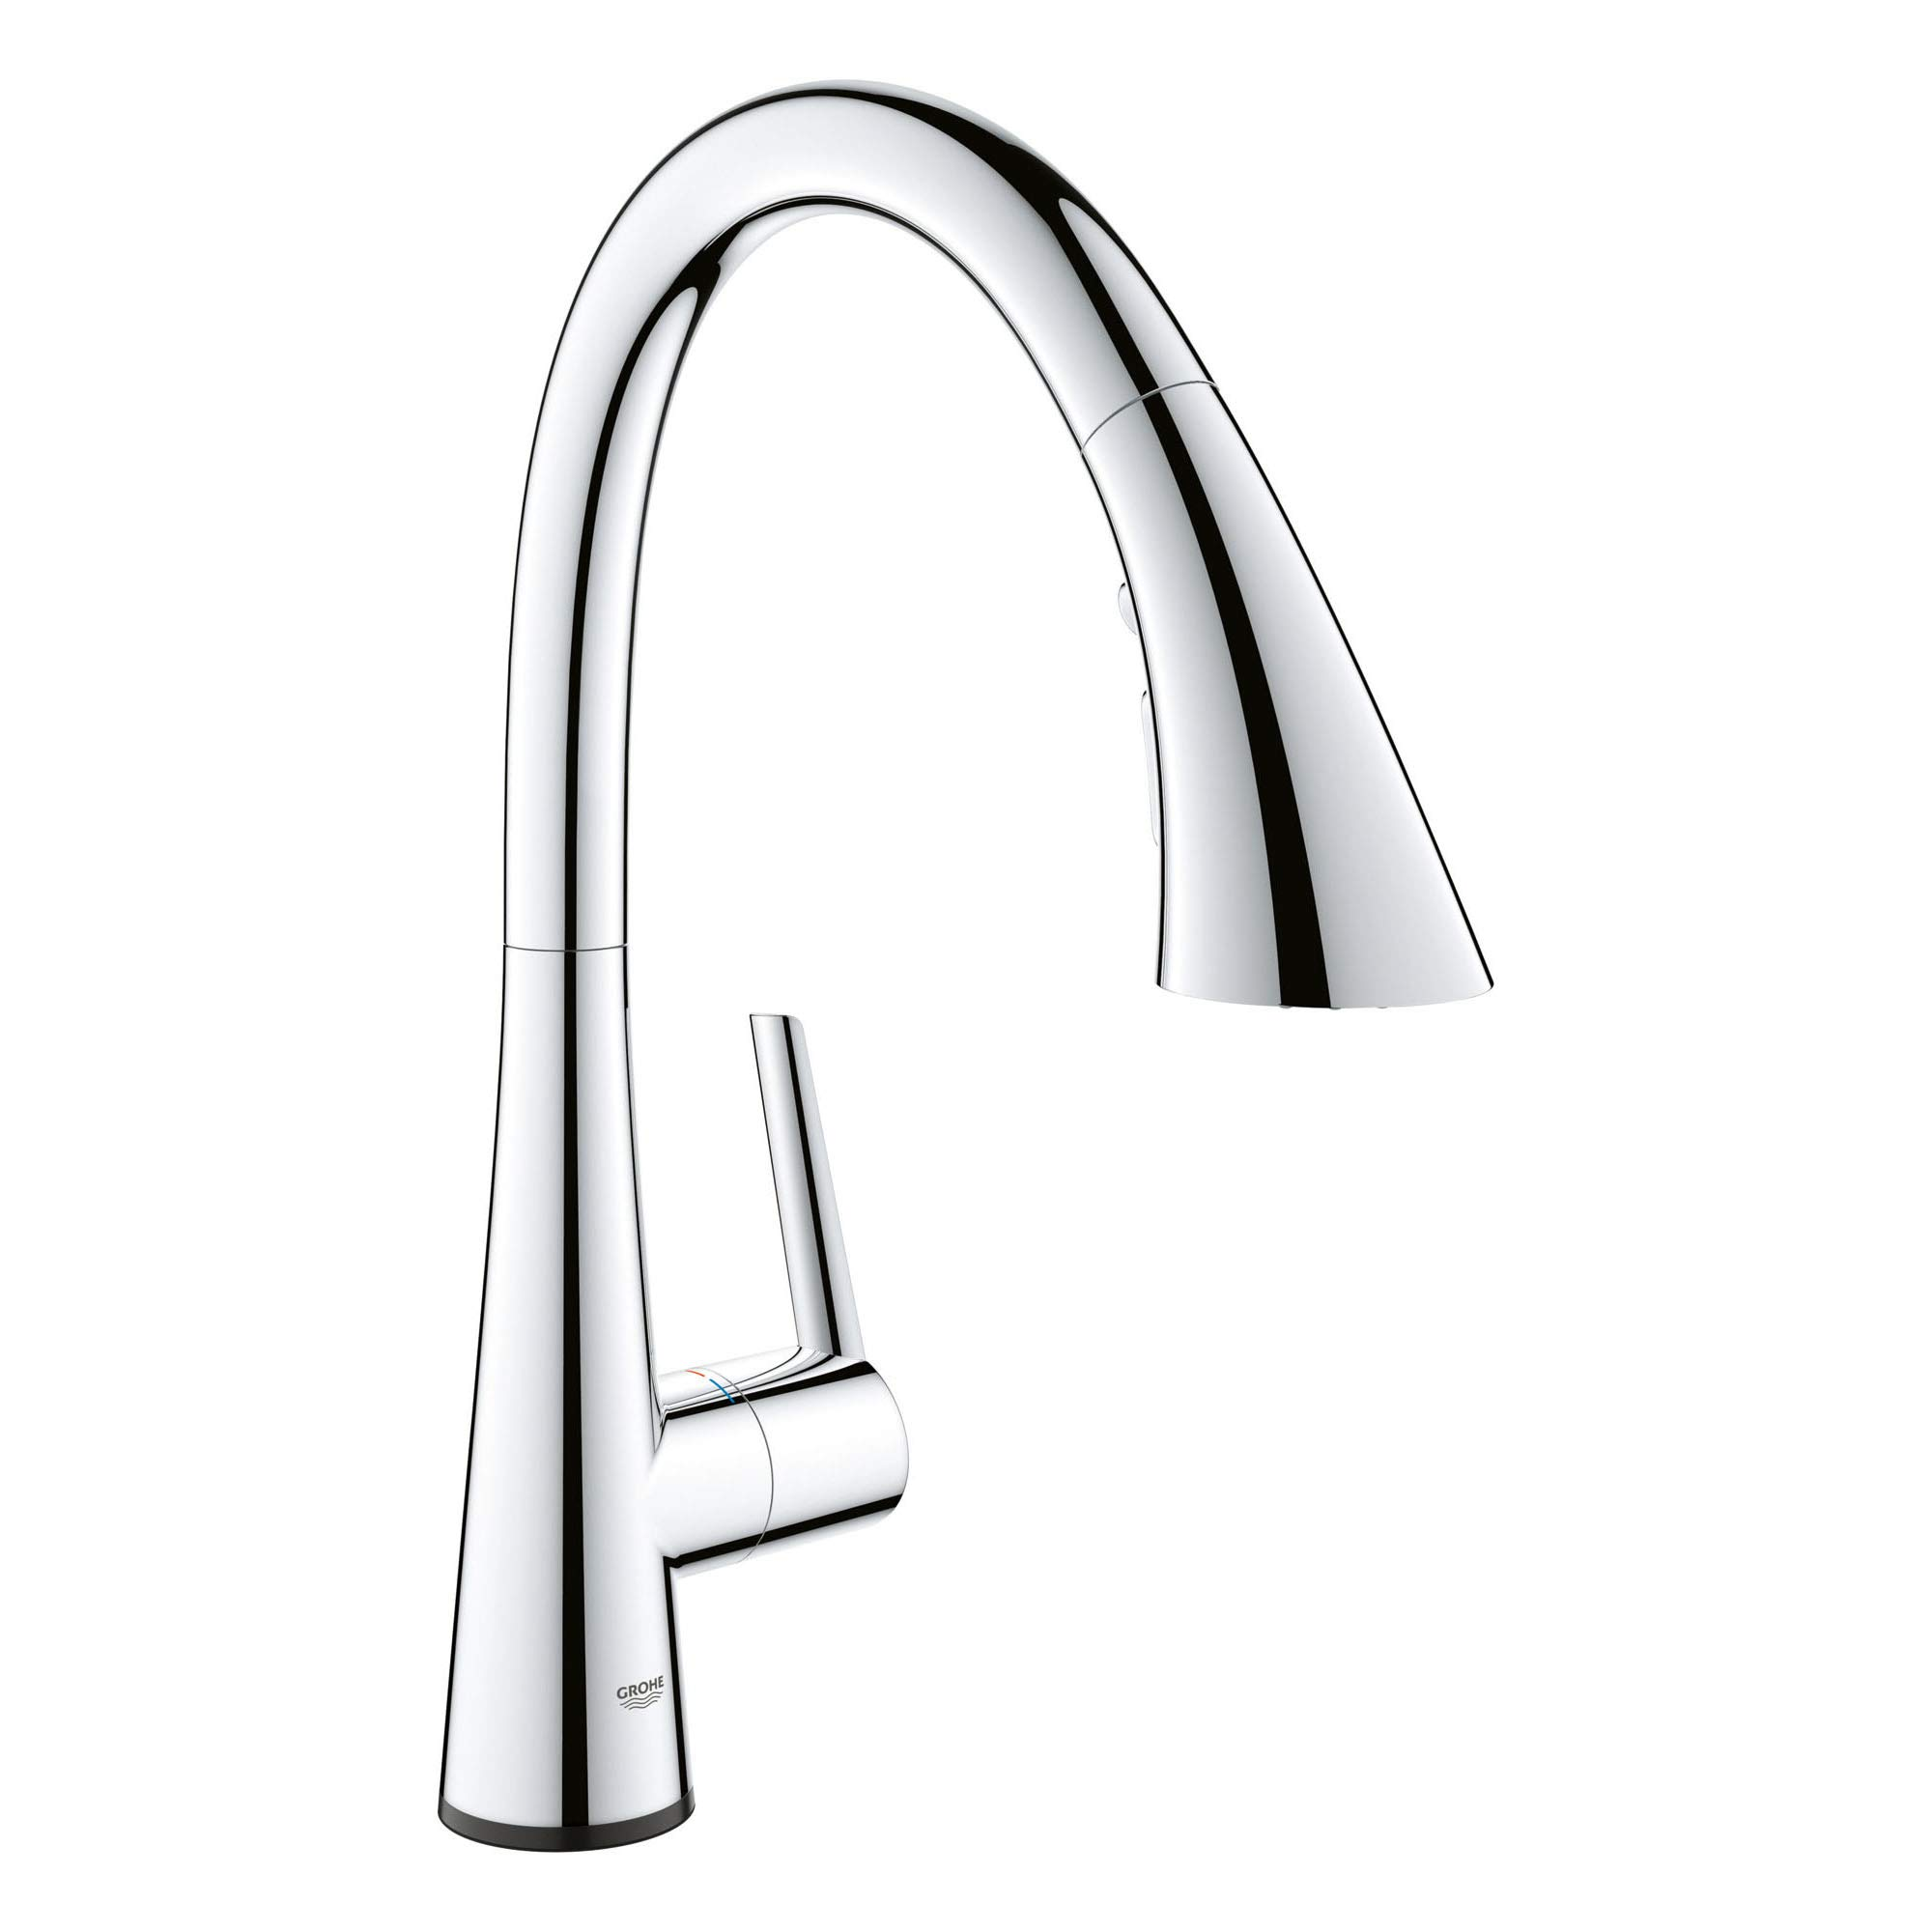 grohe 30205002 ladylux l2 touch single handle pull down triple spray kitchen faucet in starlight chrome